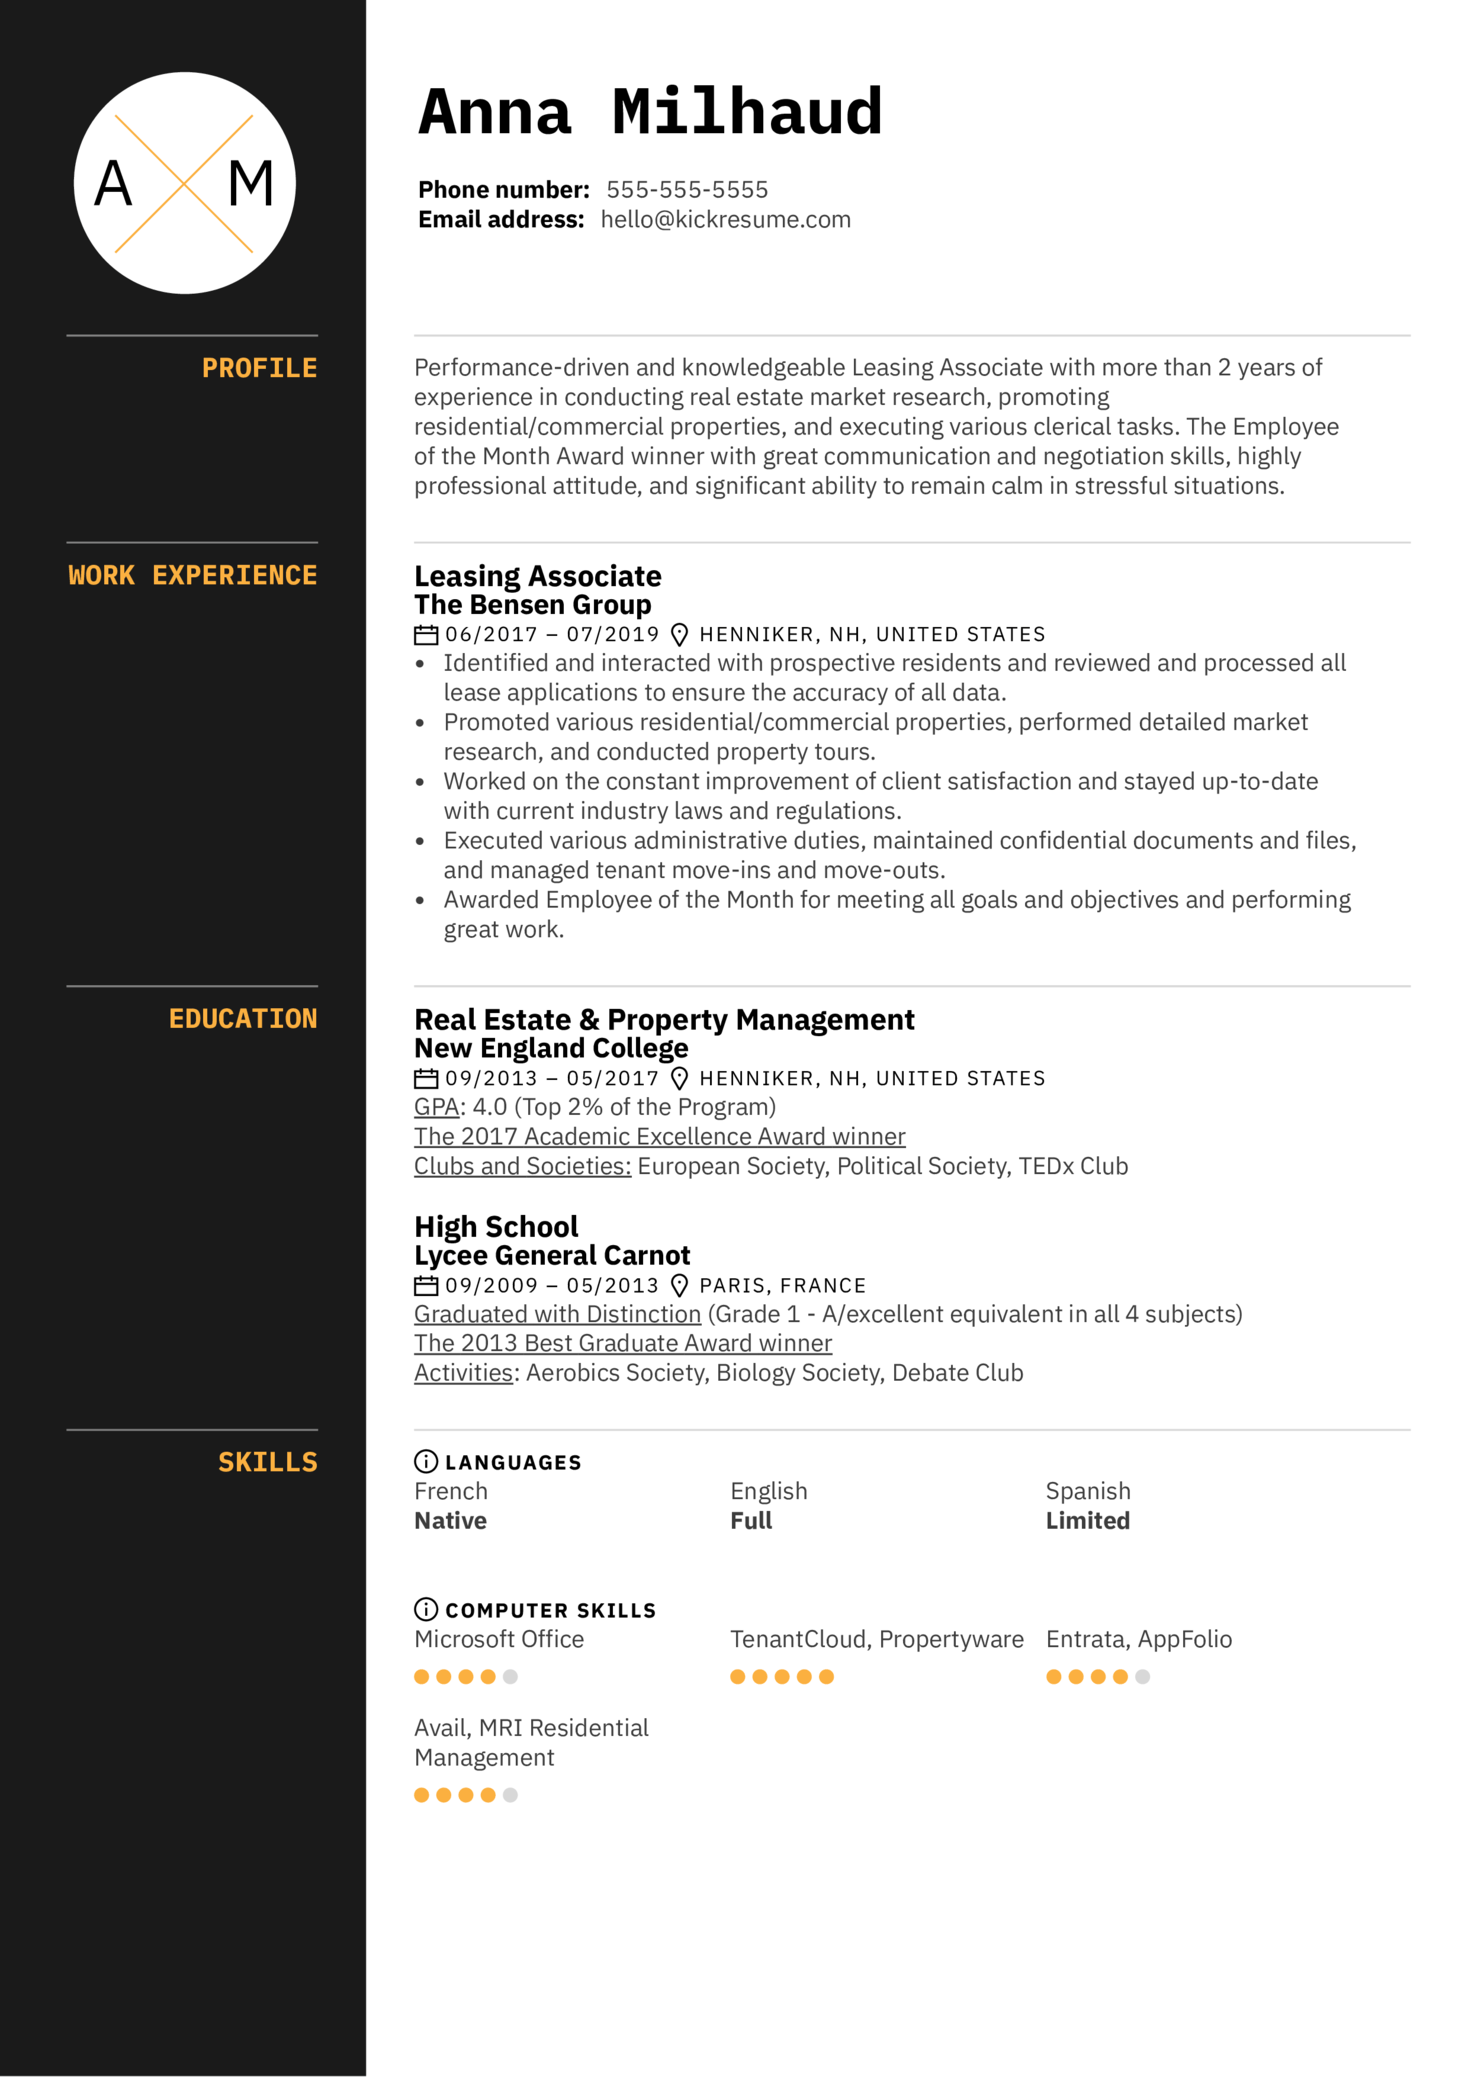 Leasing Associate Resume Sample (Part 1)